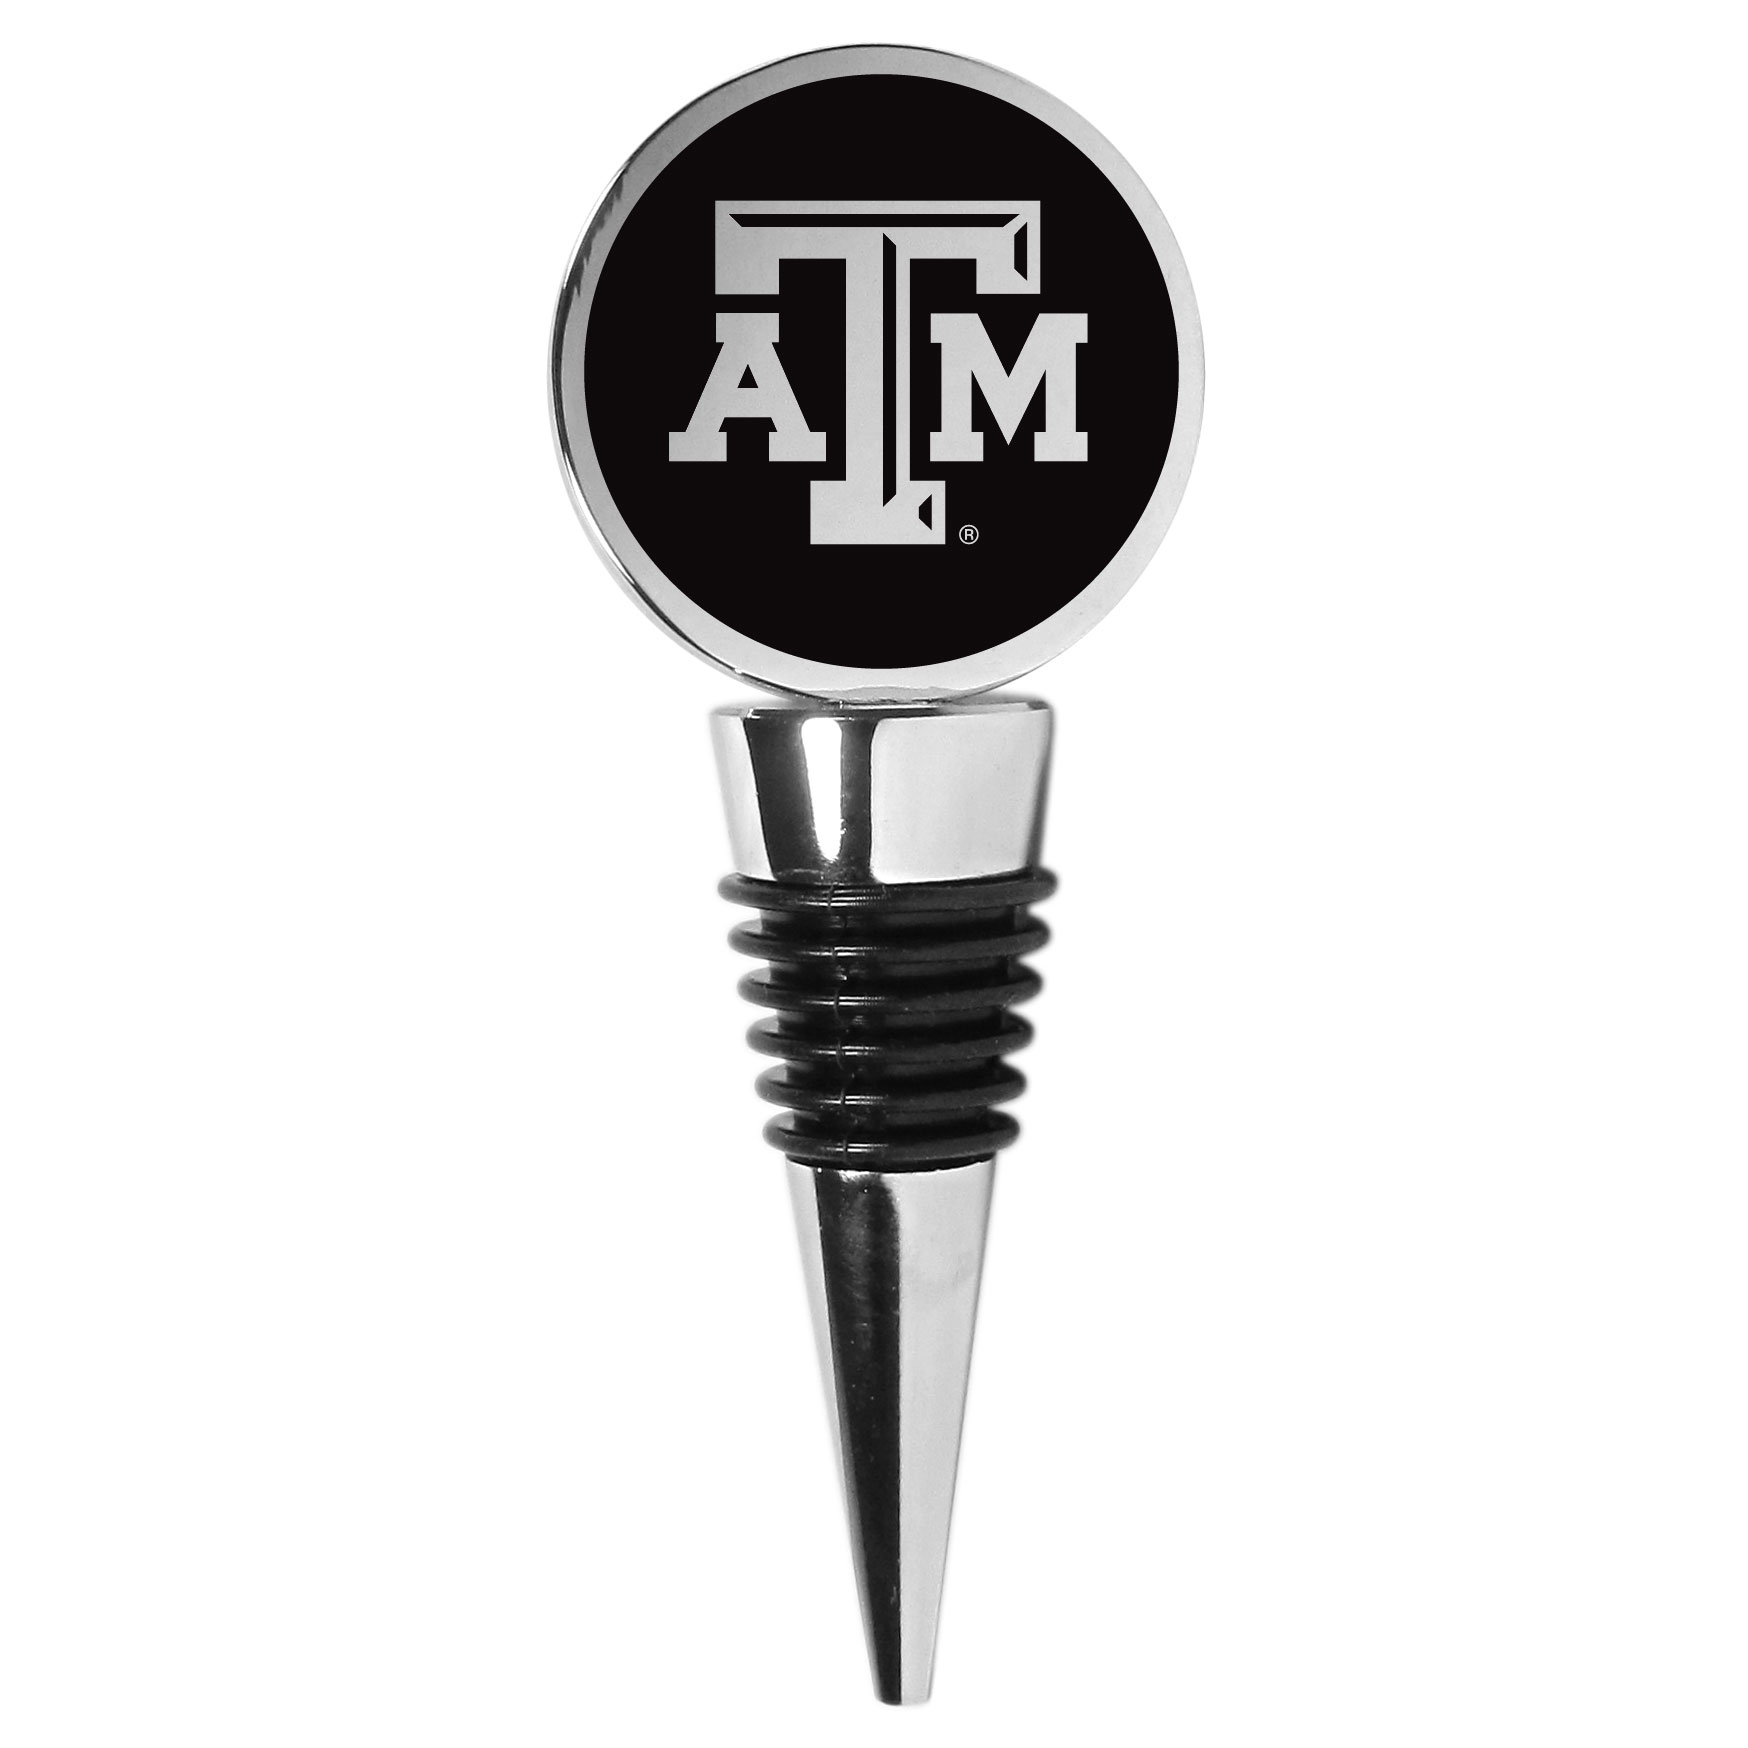 Texas A and M Aggies Wine Stopper - This beautiful Texas A & M Aggies wine stopper has a classy monochromatic logo on the top disc. The tapered rubber rings allow you to create a tight seal on multiple sizes of wine bottles so that you are able to preserve the wine for later enjoyment. This a perfect addition to a game day celebration.